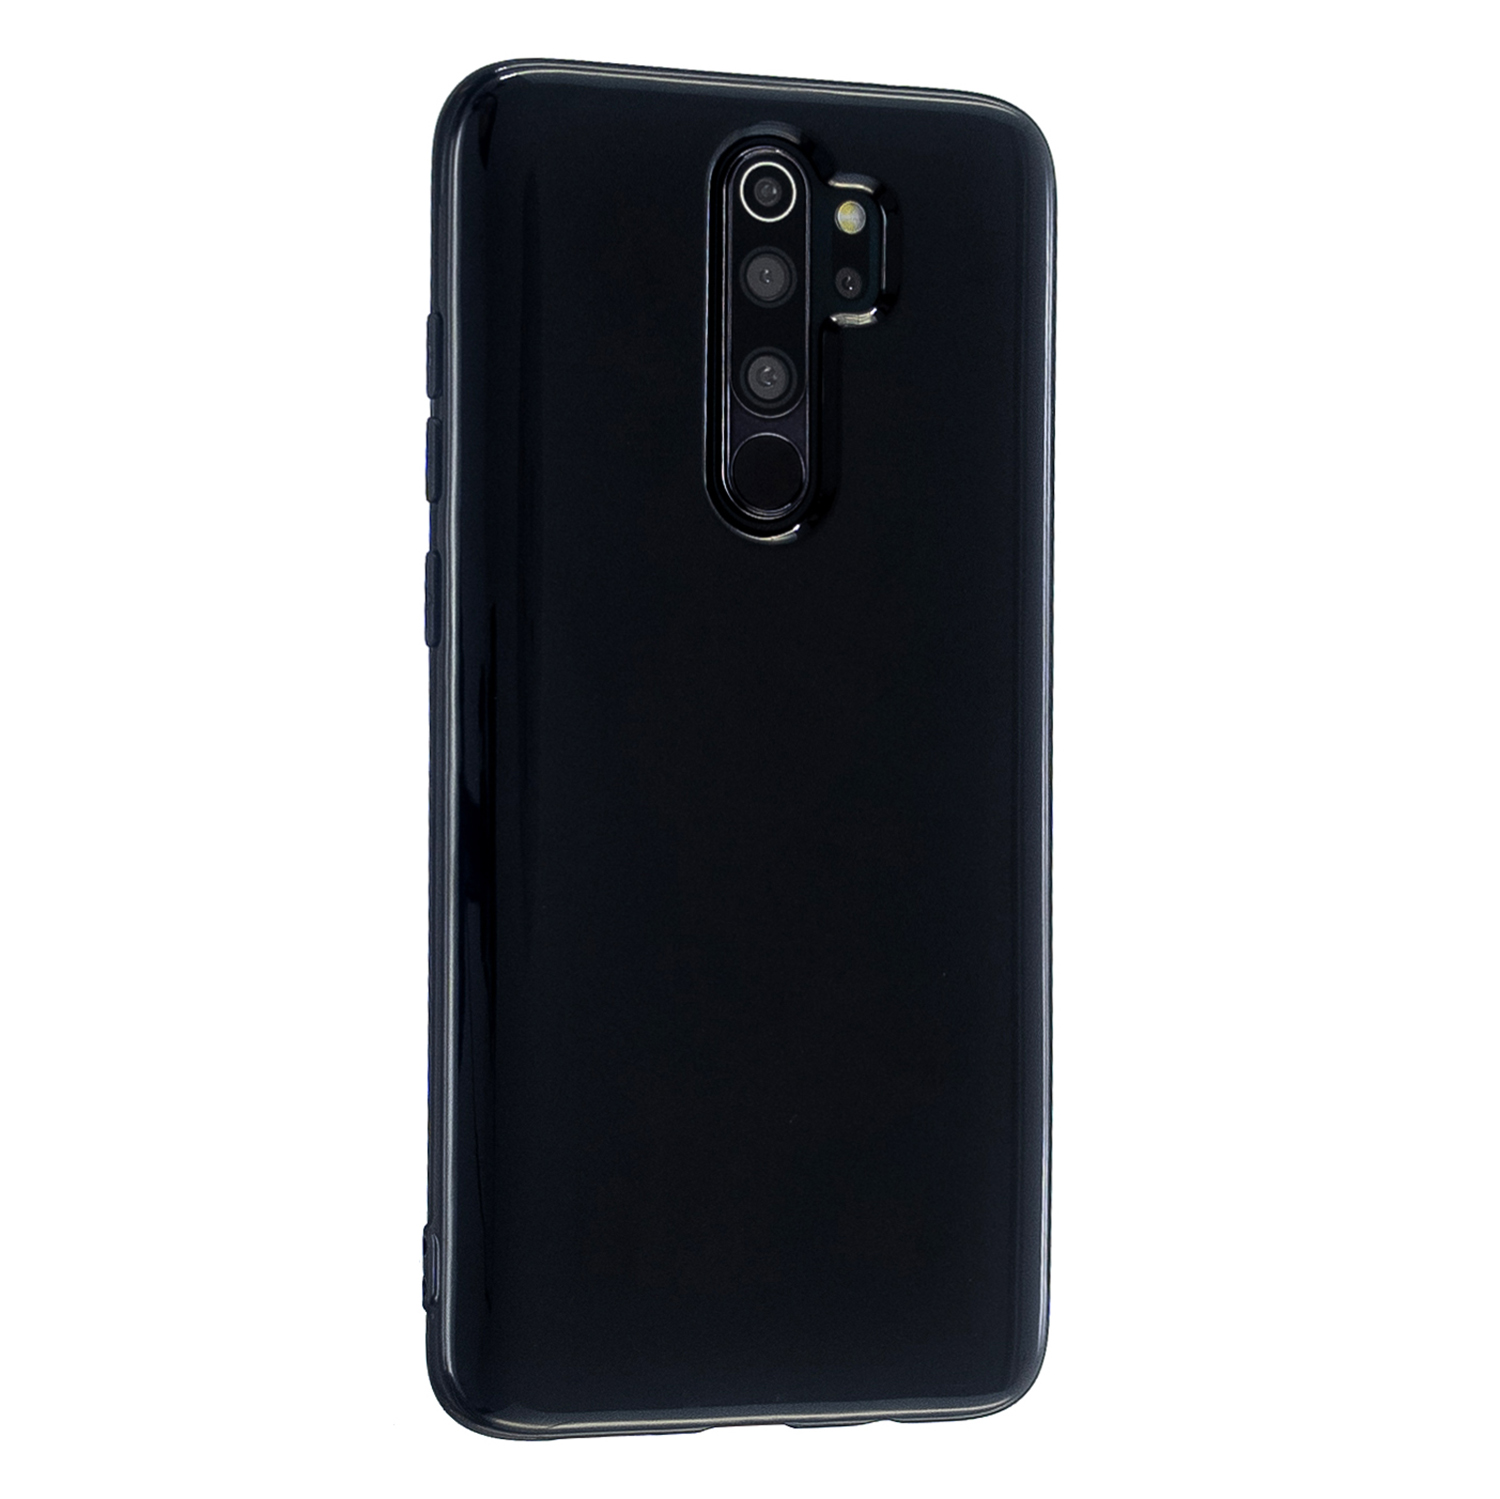 for VIVO Reno Ace/X2 PRO/ A9 2020/A5 2020 Thicken 2.0mm TPU Back Cover Cellphone Case Shell black